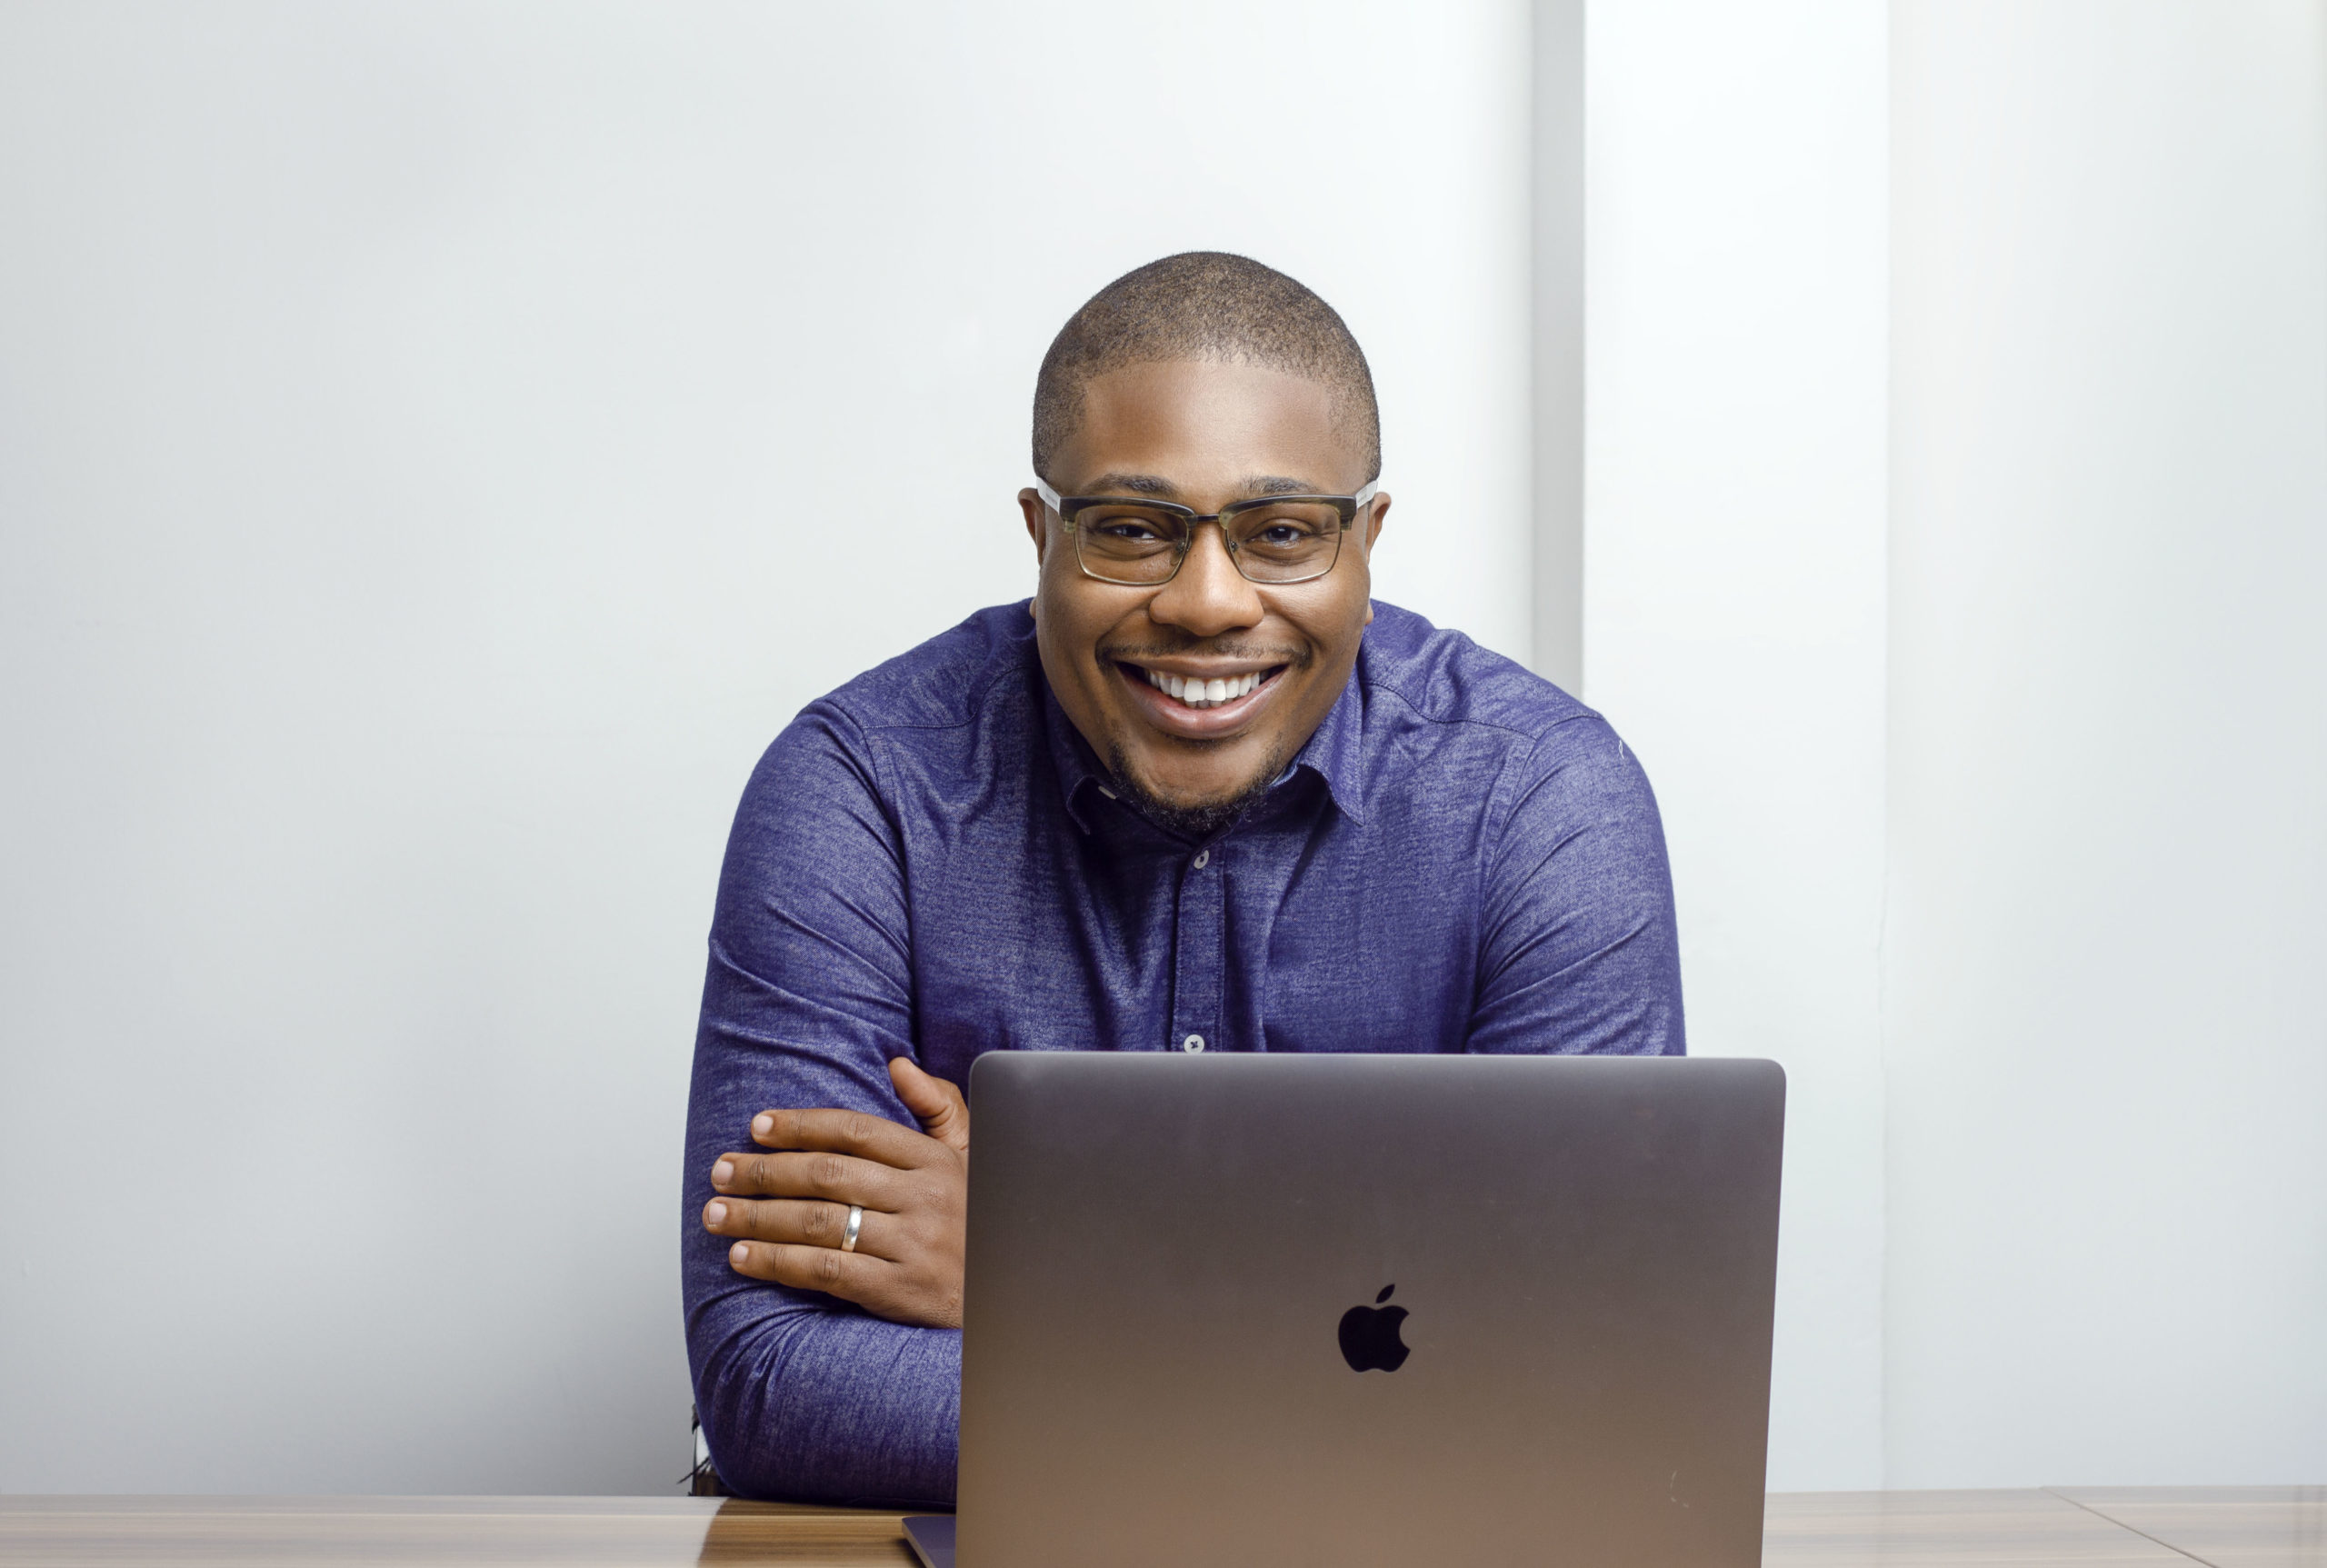 Jay Okezie on leading two startups through a global pandemic